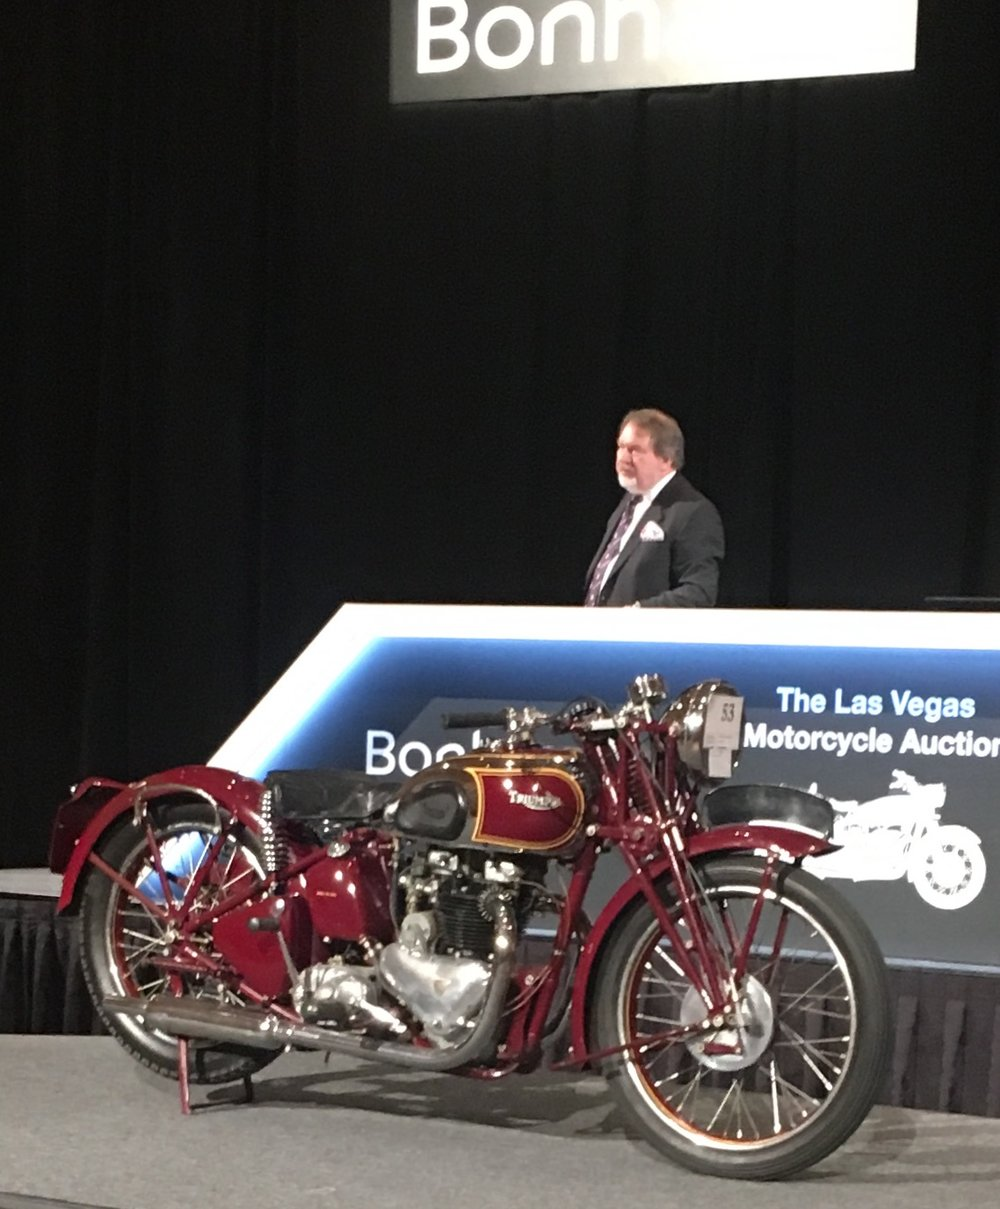 The King of Cool, Steve McQueen's Triumph sold for $175,000.